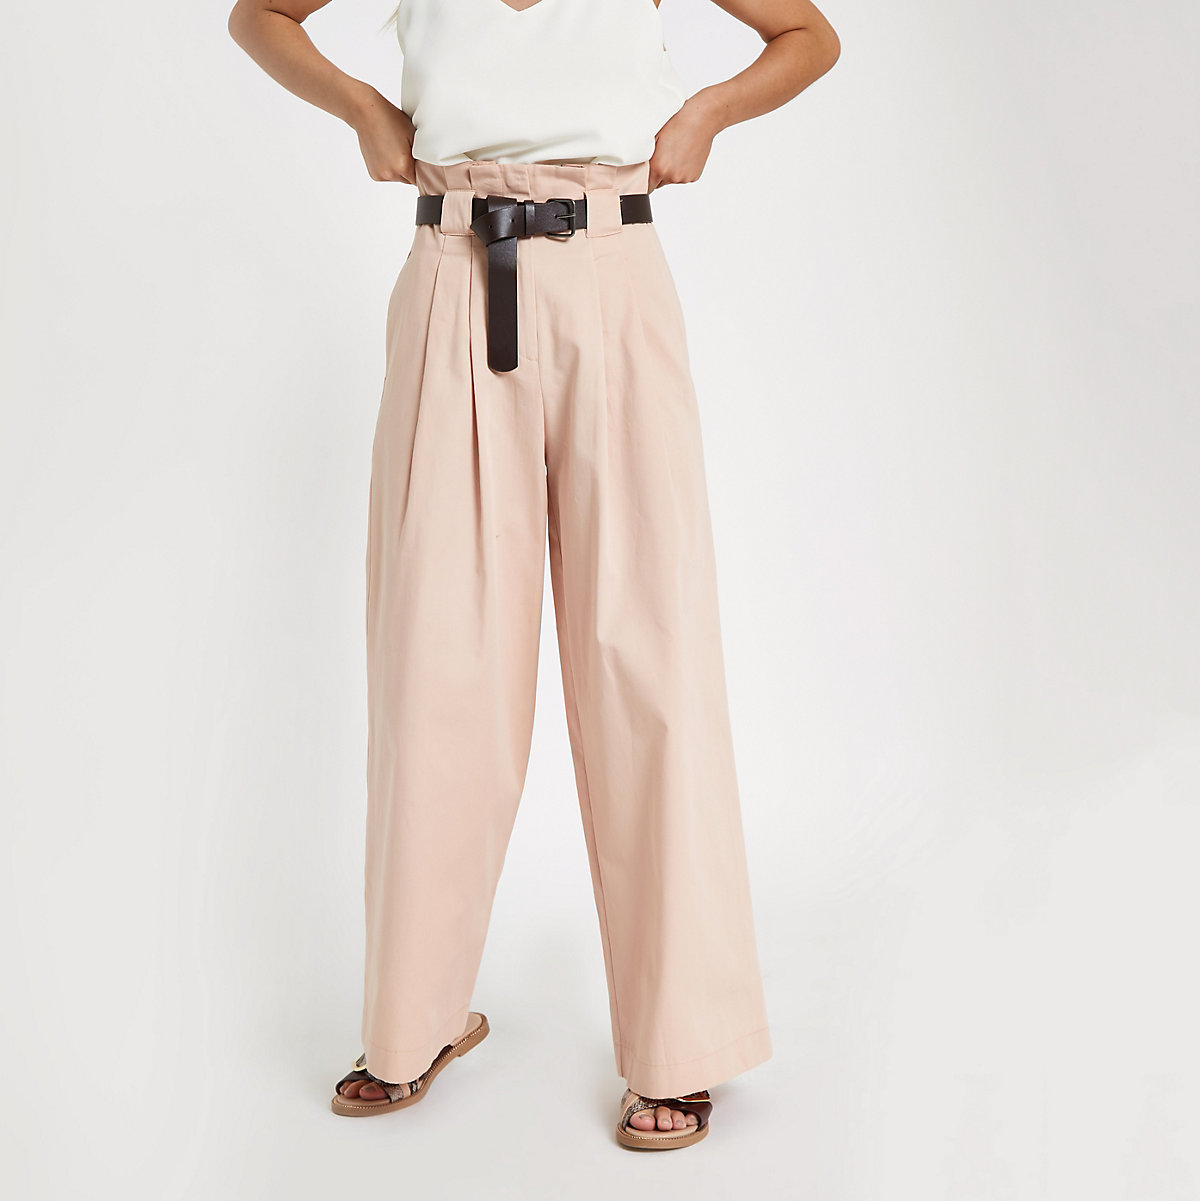 Petite pink belted wide leg pants